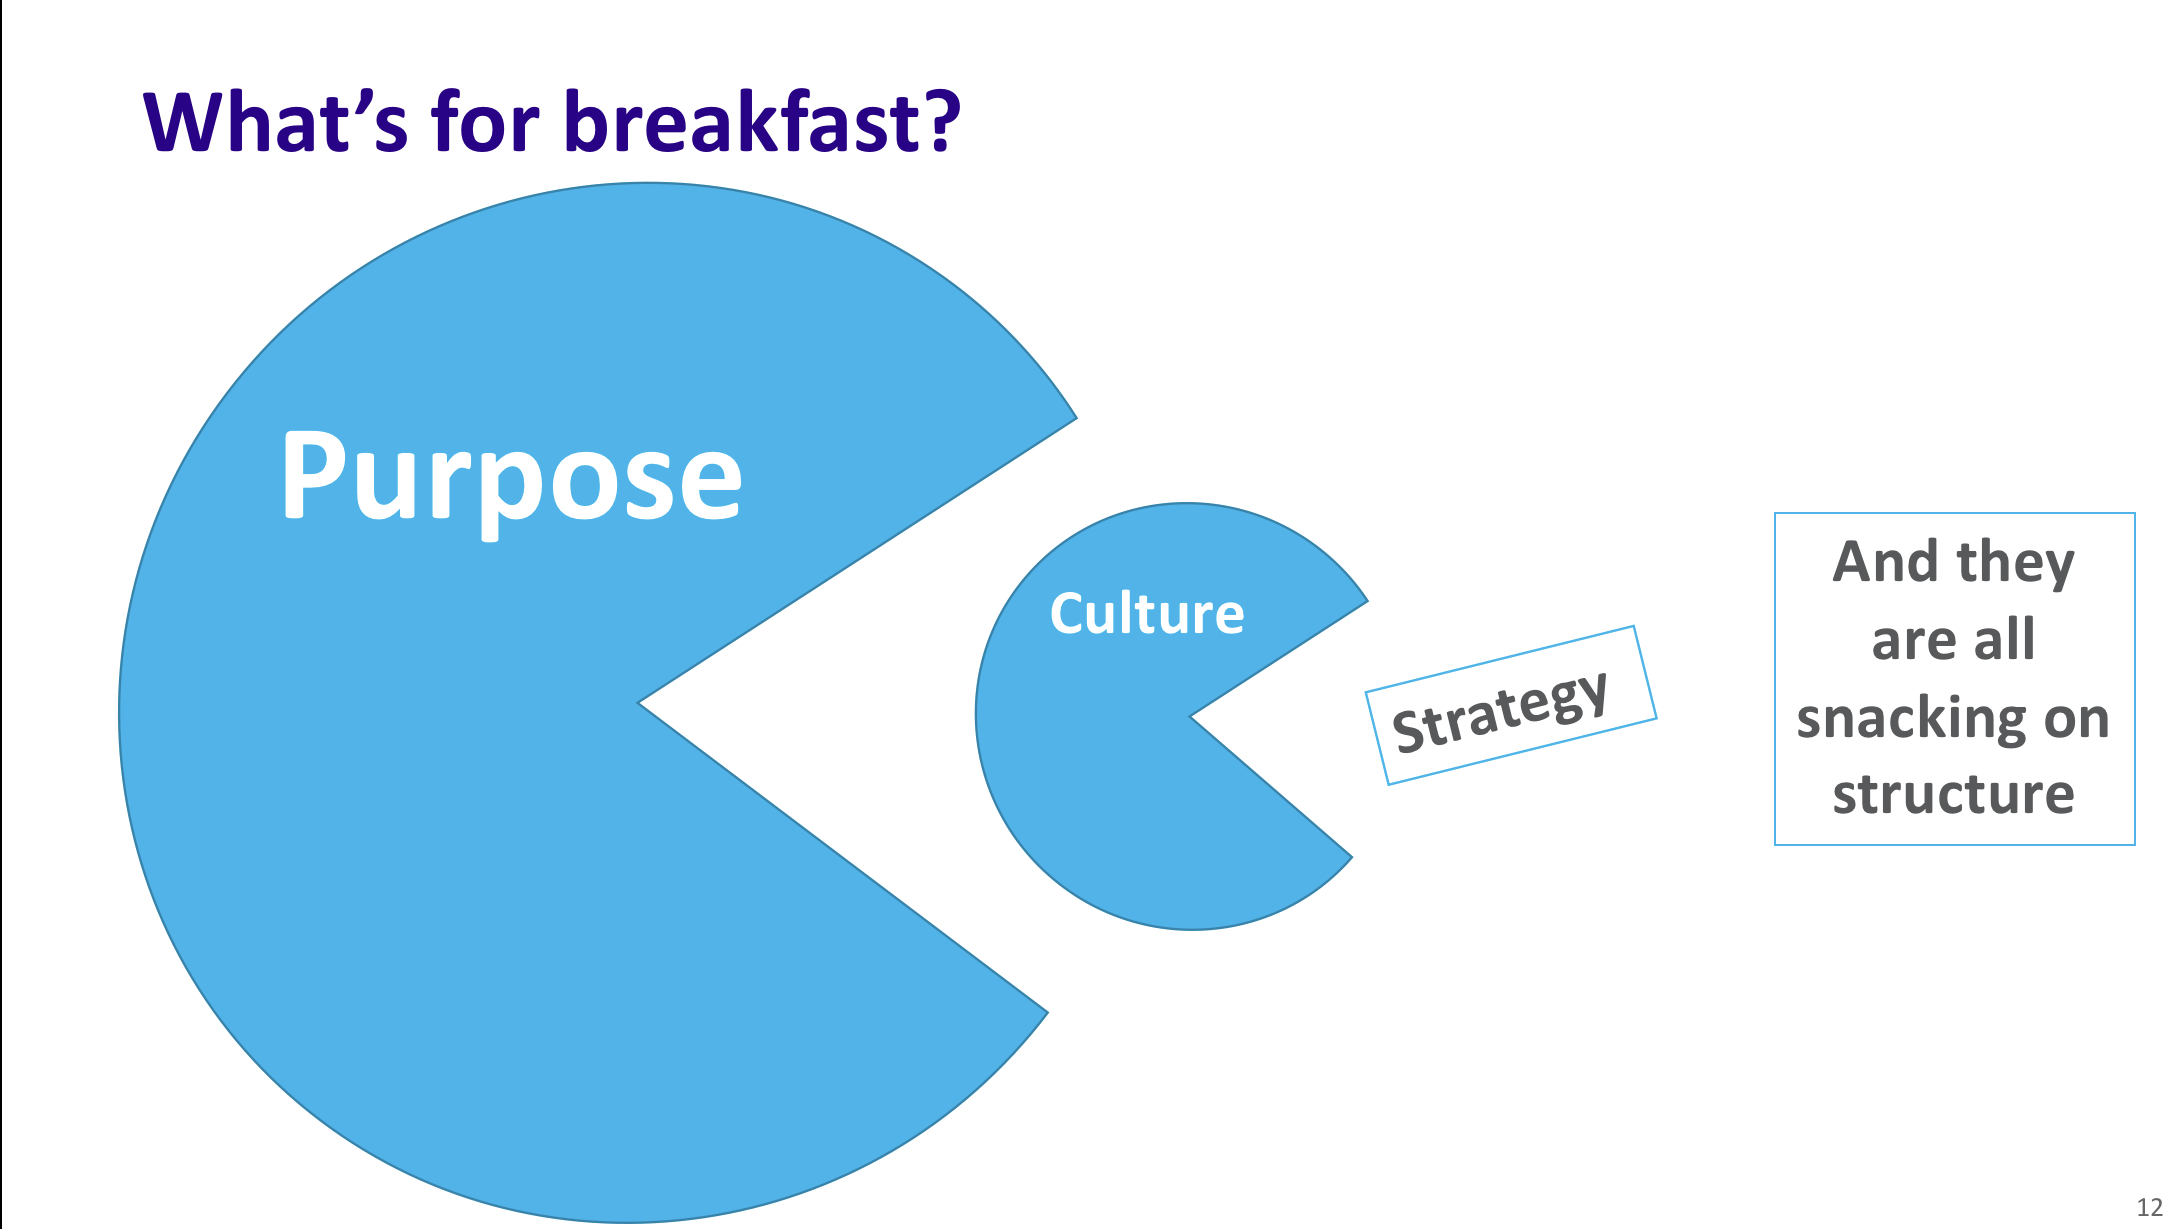 purpose east culture which eats strategy